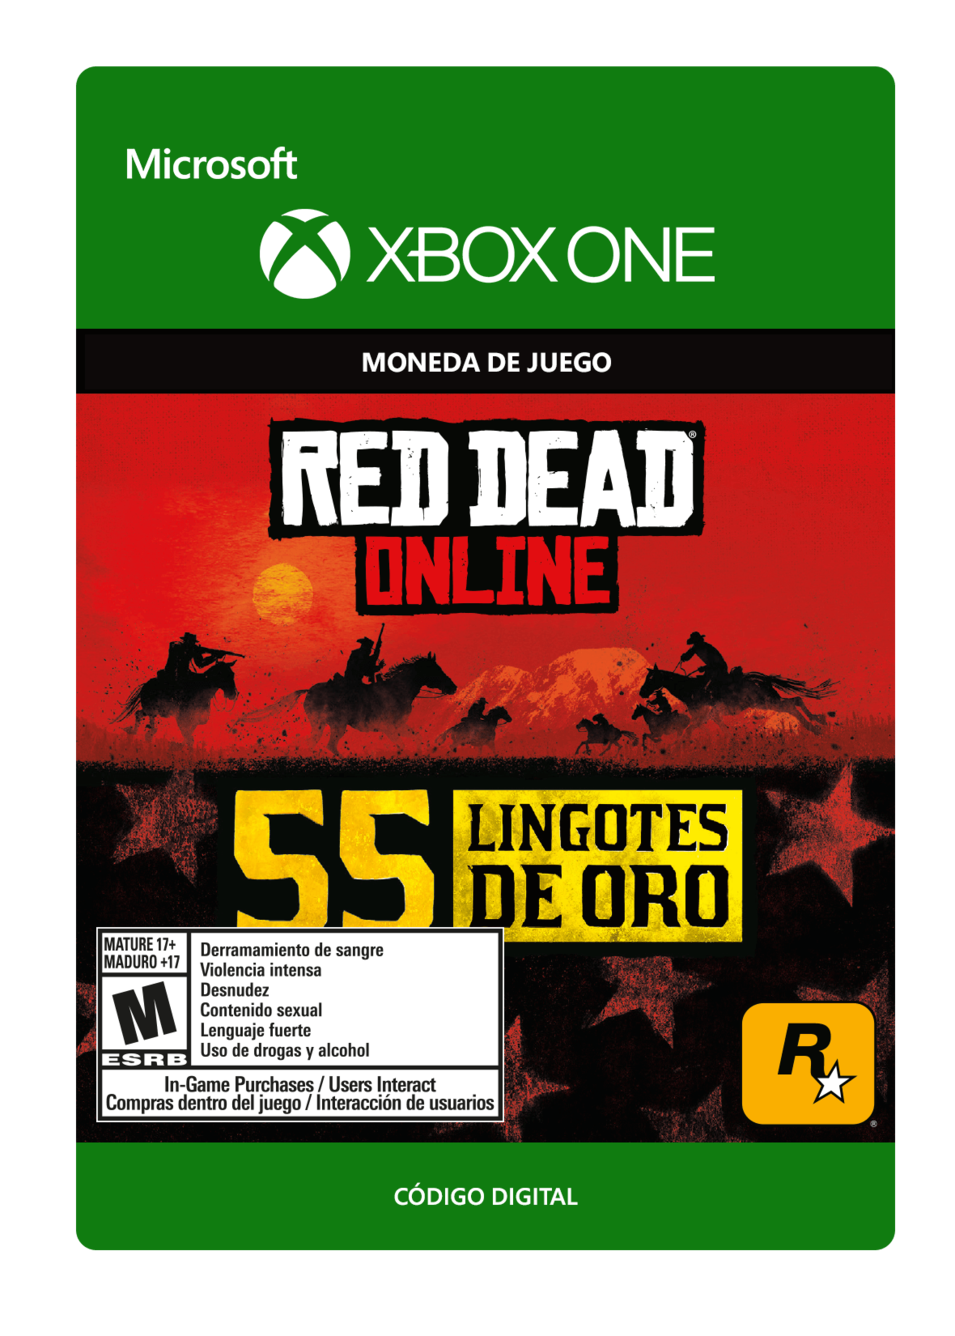 Red Dead Redemption 2: 55 Gold Bars Lingotes de Oro